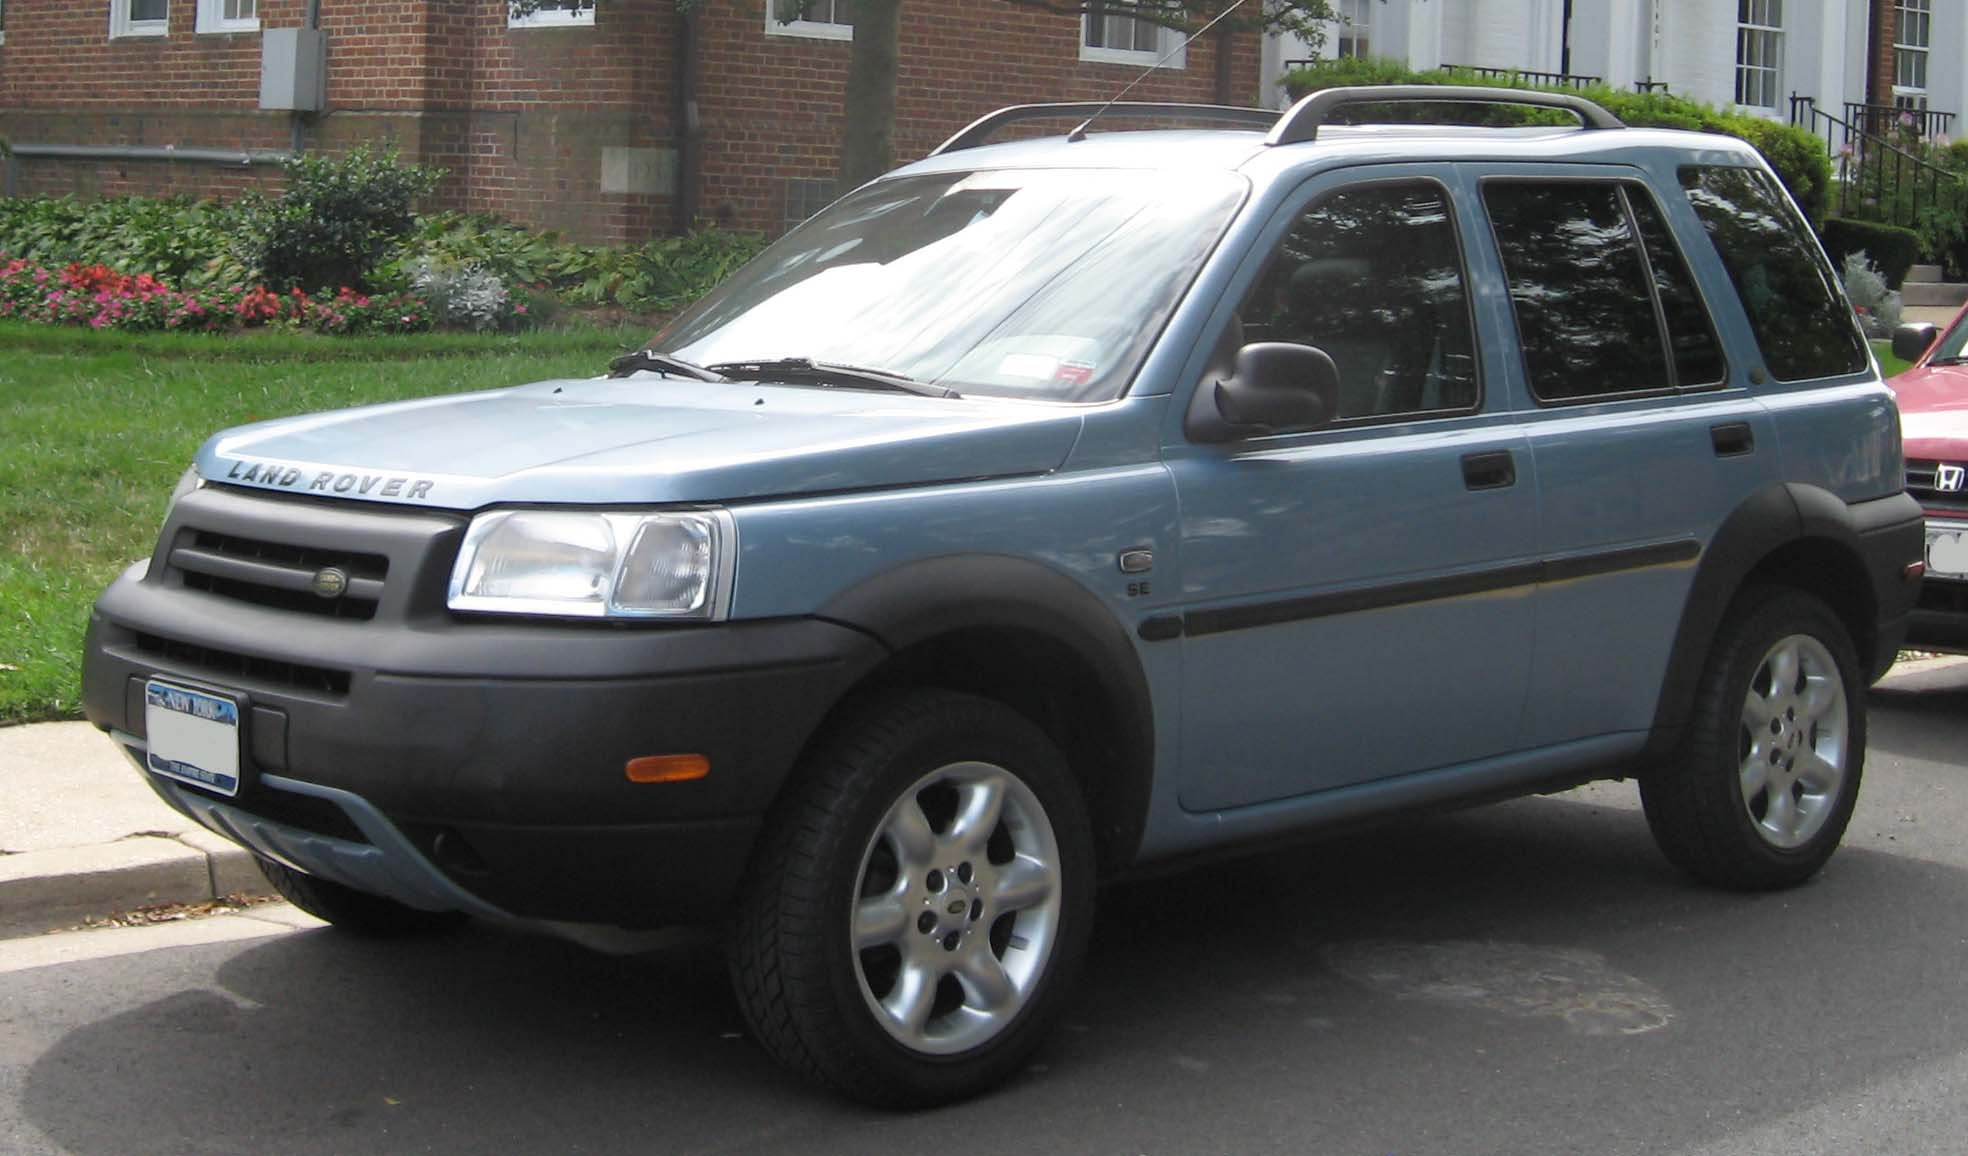 Land Rover Freelander 1.8 Softback (2003)